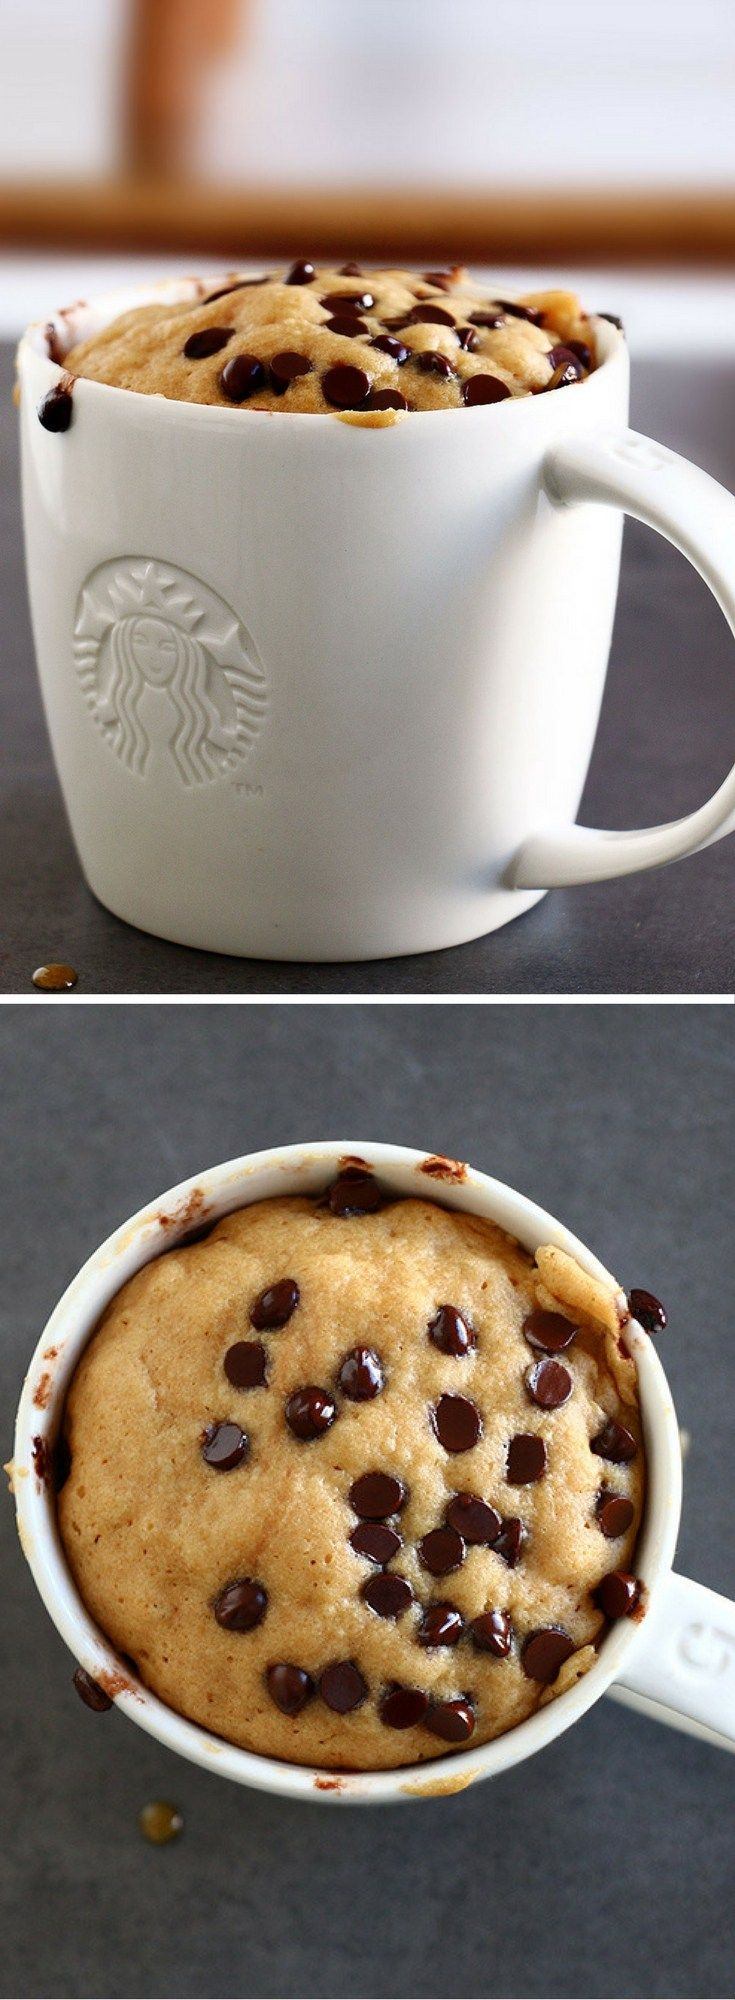 This Healthy Peanut Butter Mug Cake is scrumptiously delicious and can be whipped up in 3min. It is refined sugar free, gluten-free and can even be made to be vegan.